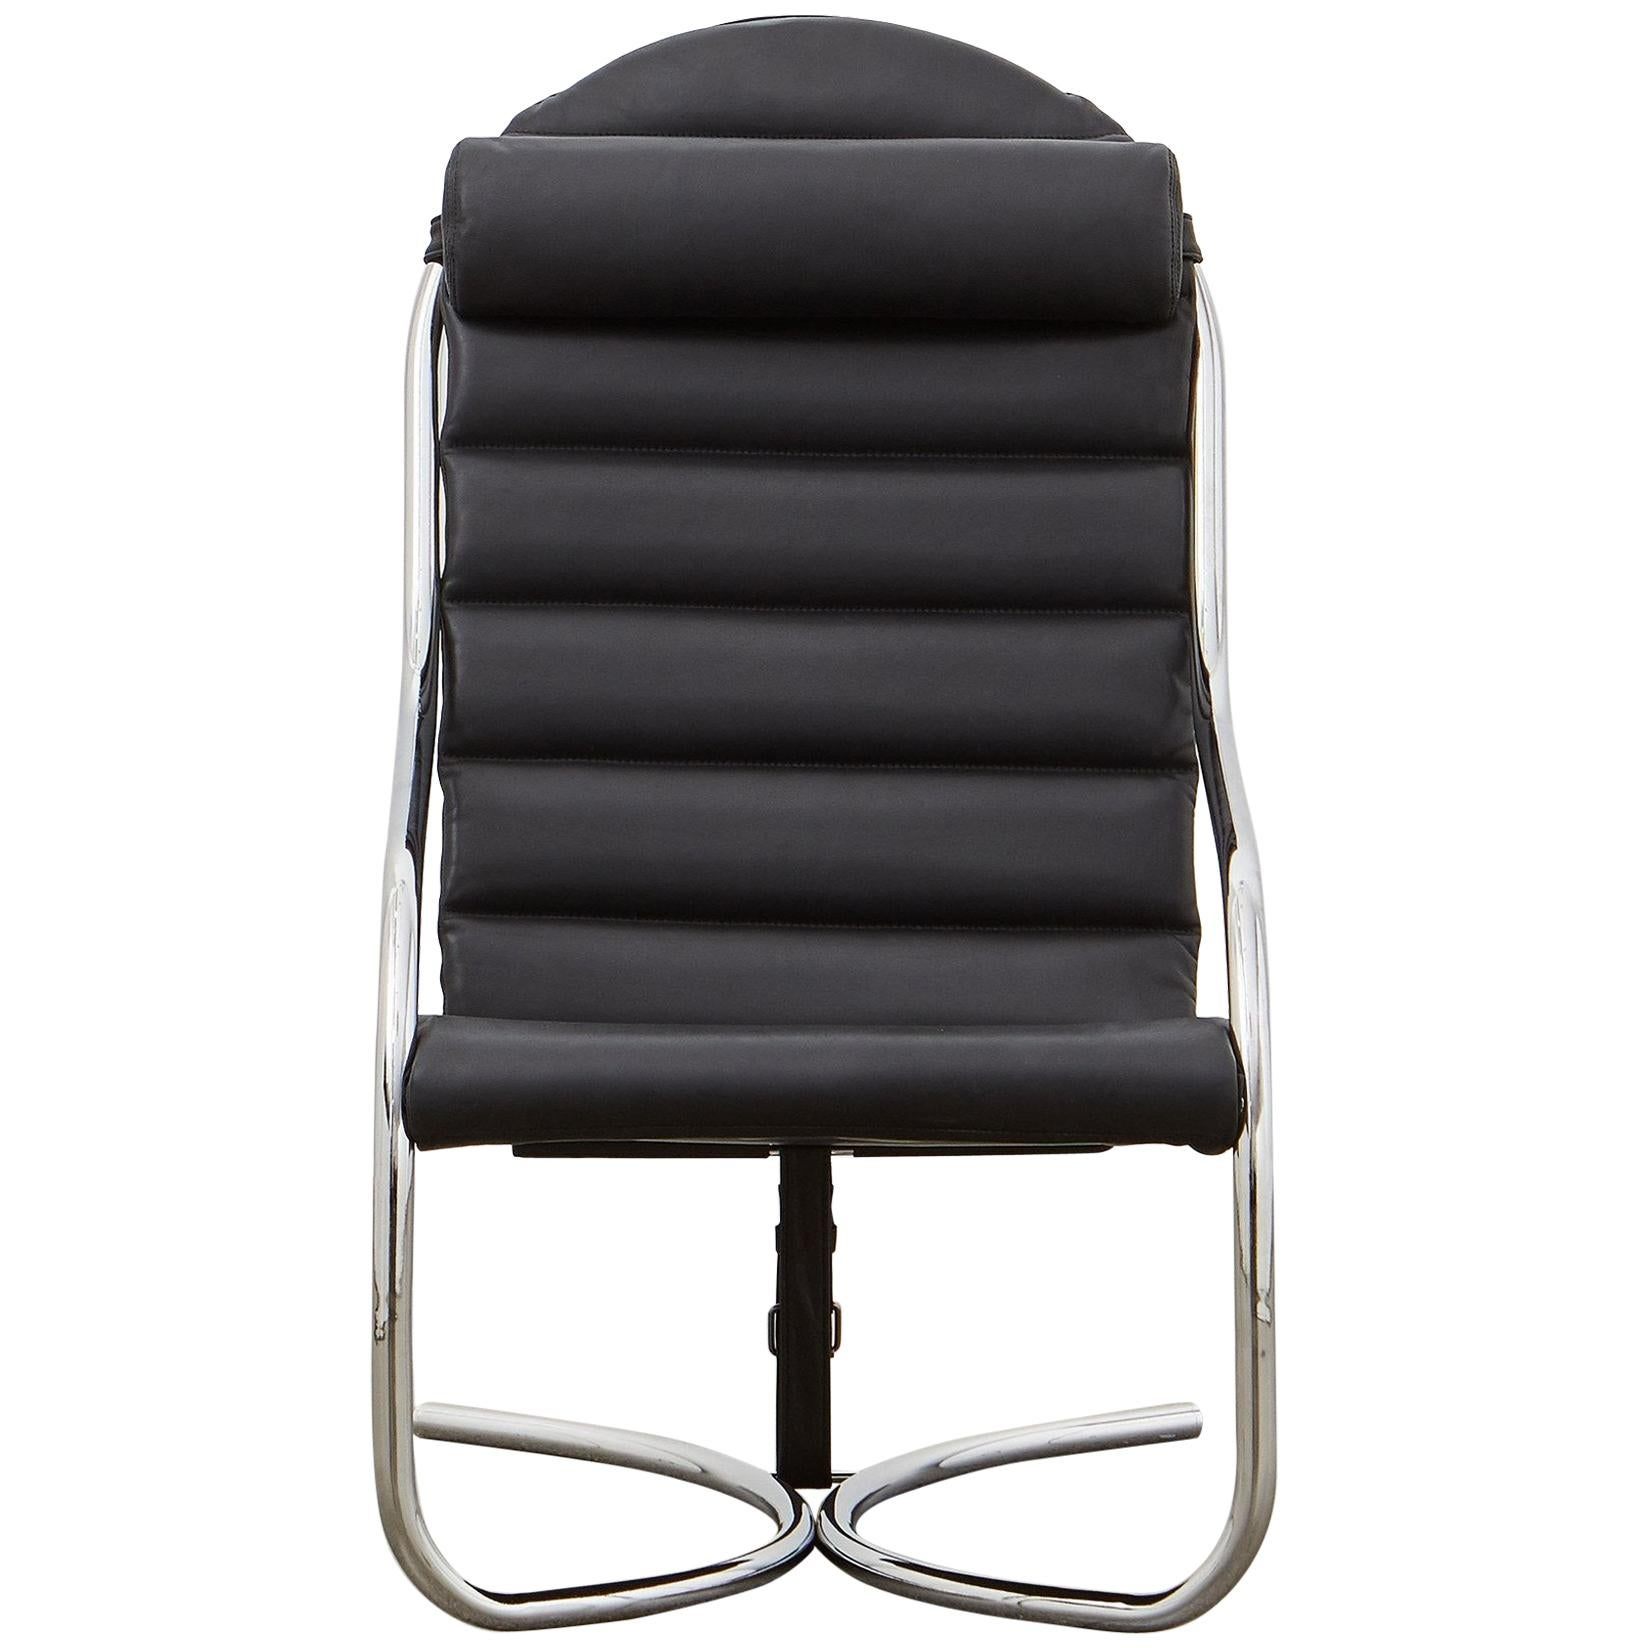 PH Lounge Chair, chrome, leather extreme black